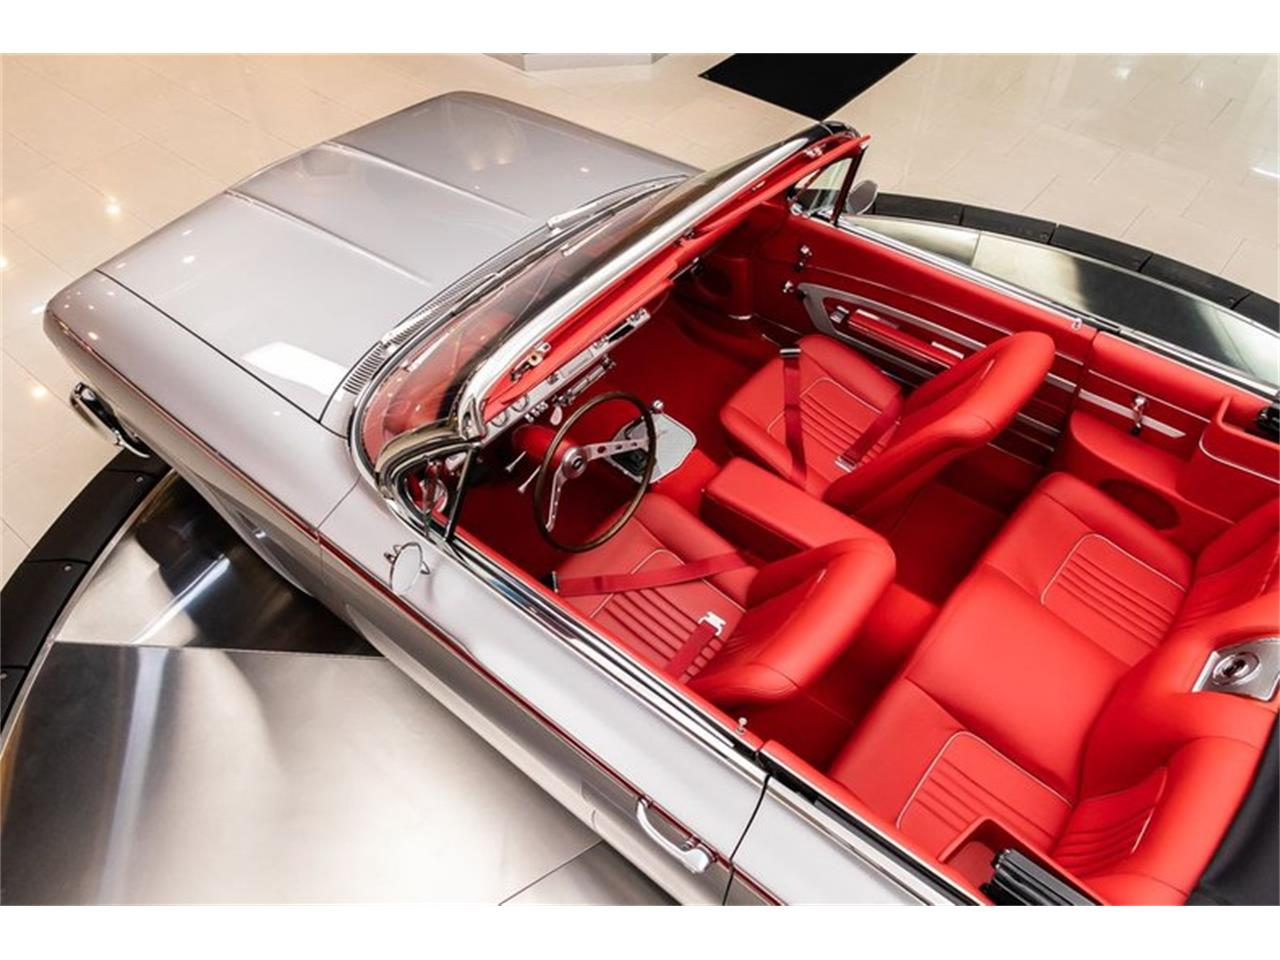 1962 Chevrolet Impala (CC-1378881) for sale in Plymouth, Michigan